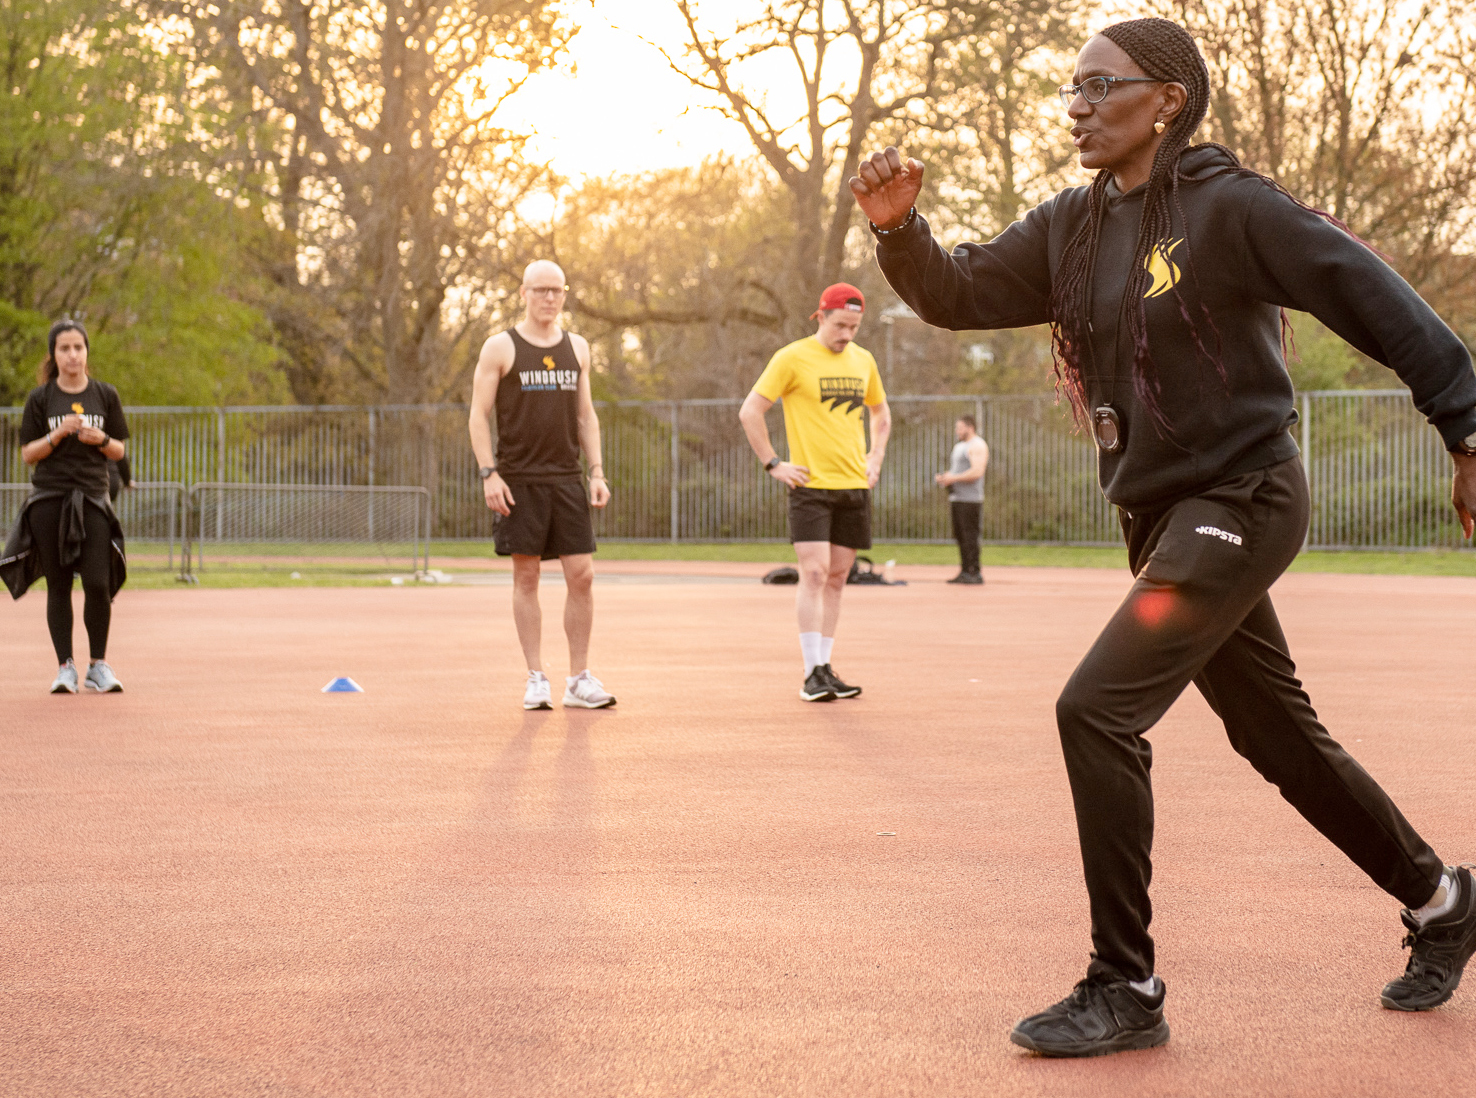 What is TriFit Brixton? - 5 weeks to go from your existing experience level to being race ready!3 different types sports: run, swim and circuitsLocally run by fully qualified coachesOnly £20 which works out as £2 per session (cheaper than any gym class)!2 sessions per weekBlack, Asian and/or from a minority ethnic background focusedNo previous experience* needed!